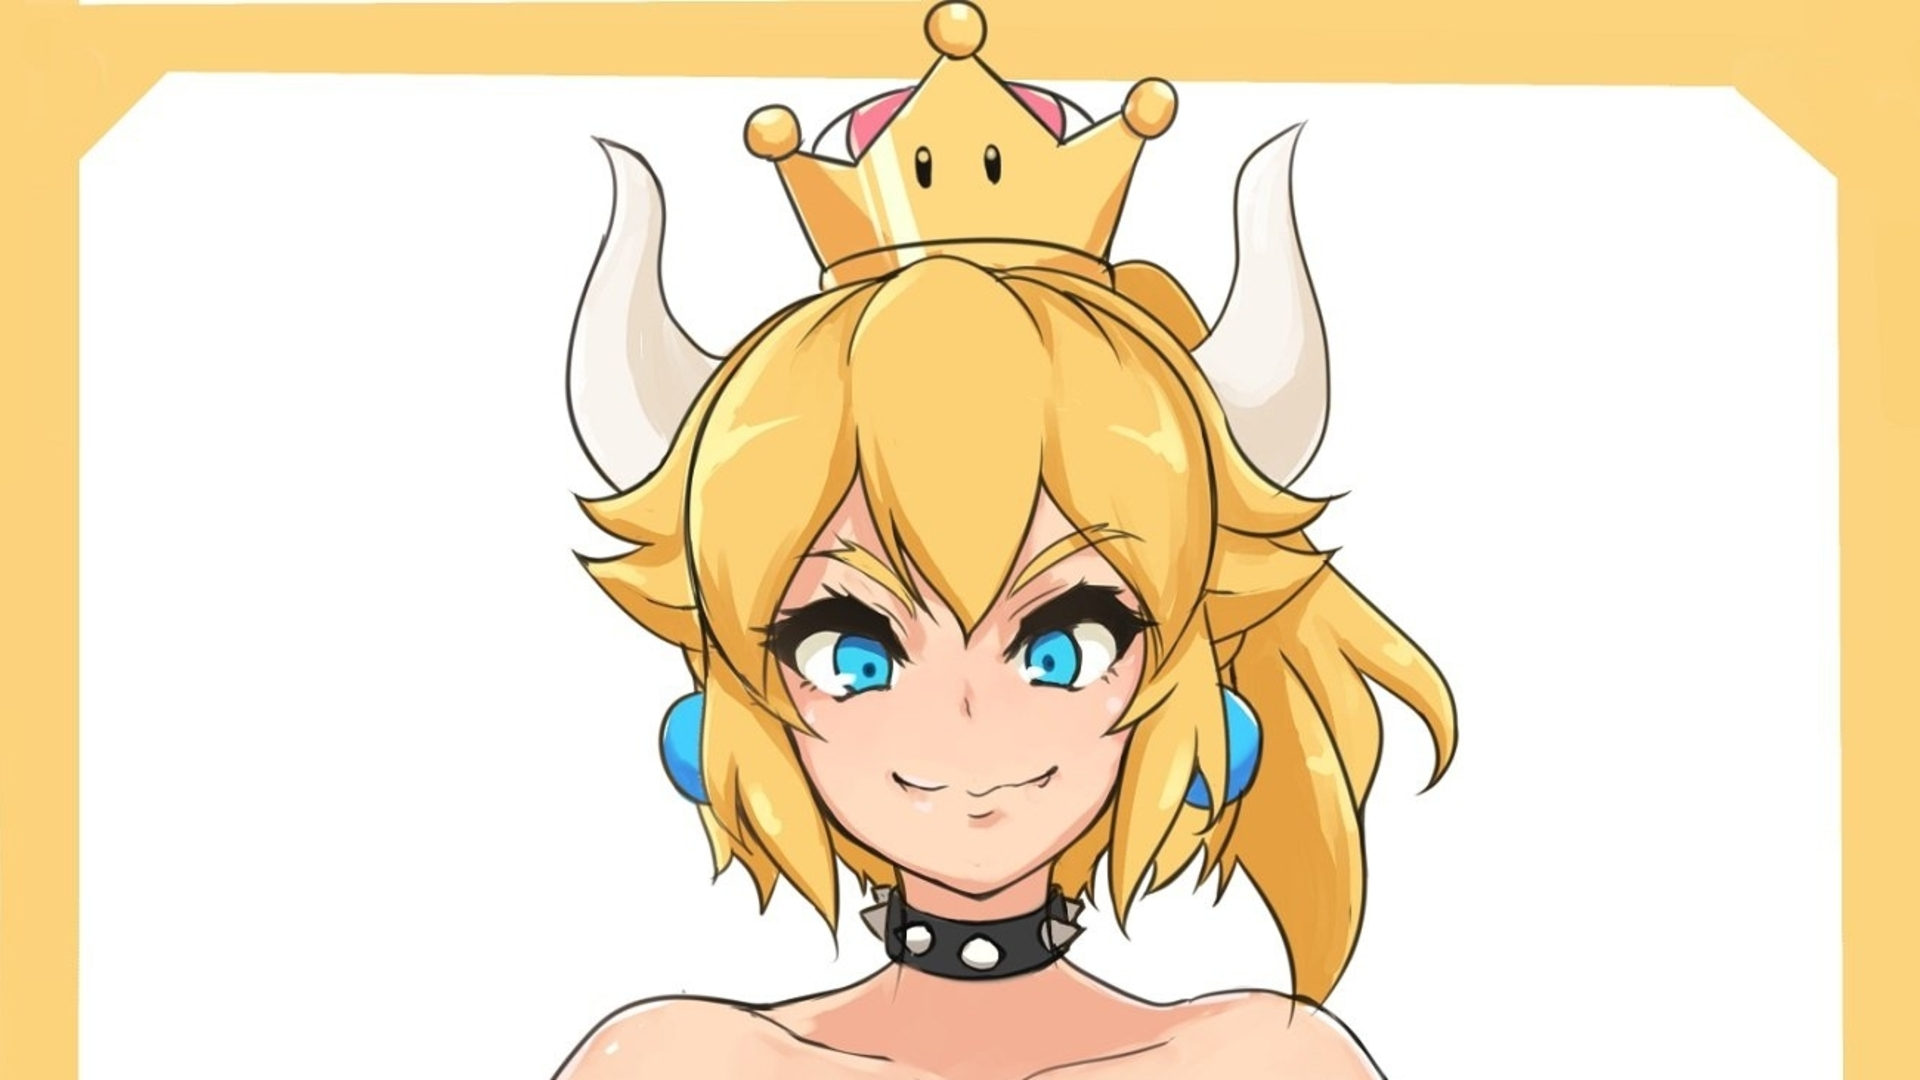 Just days after nintendo revealed that its newest version of super mario bros deluxe allowed for princess peach and toadette to